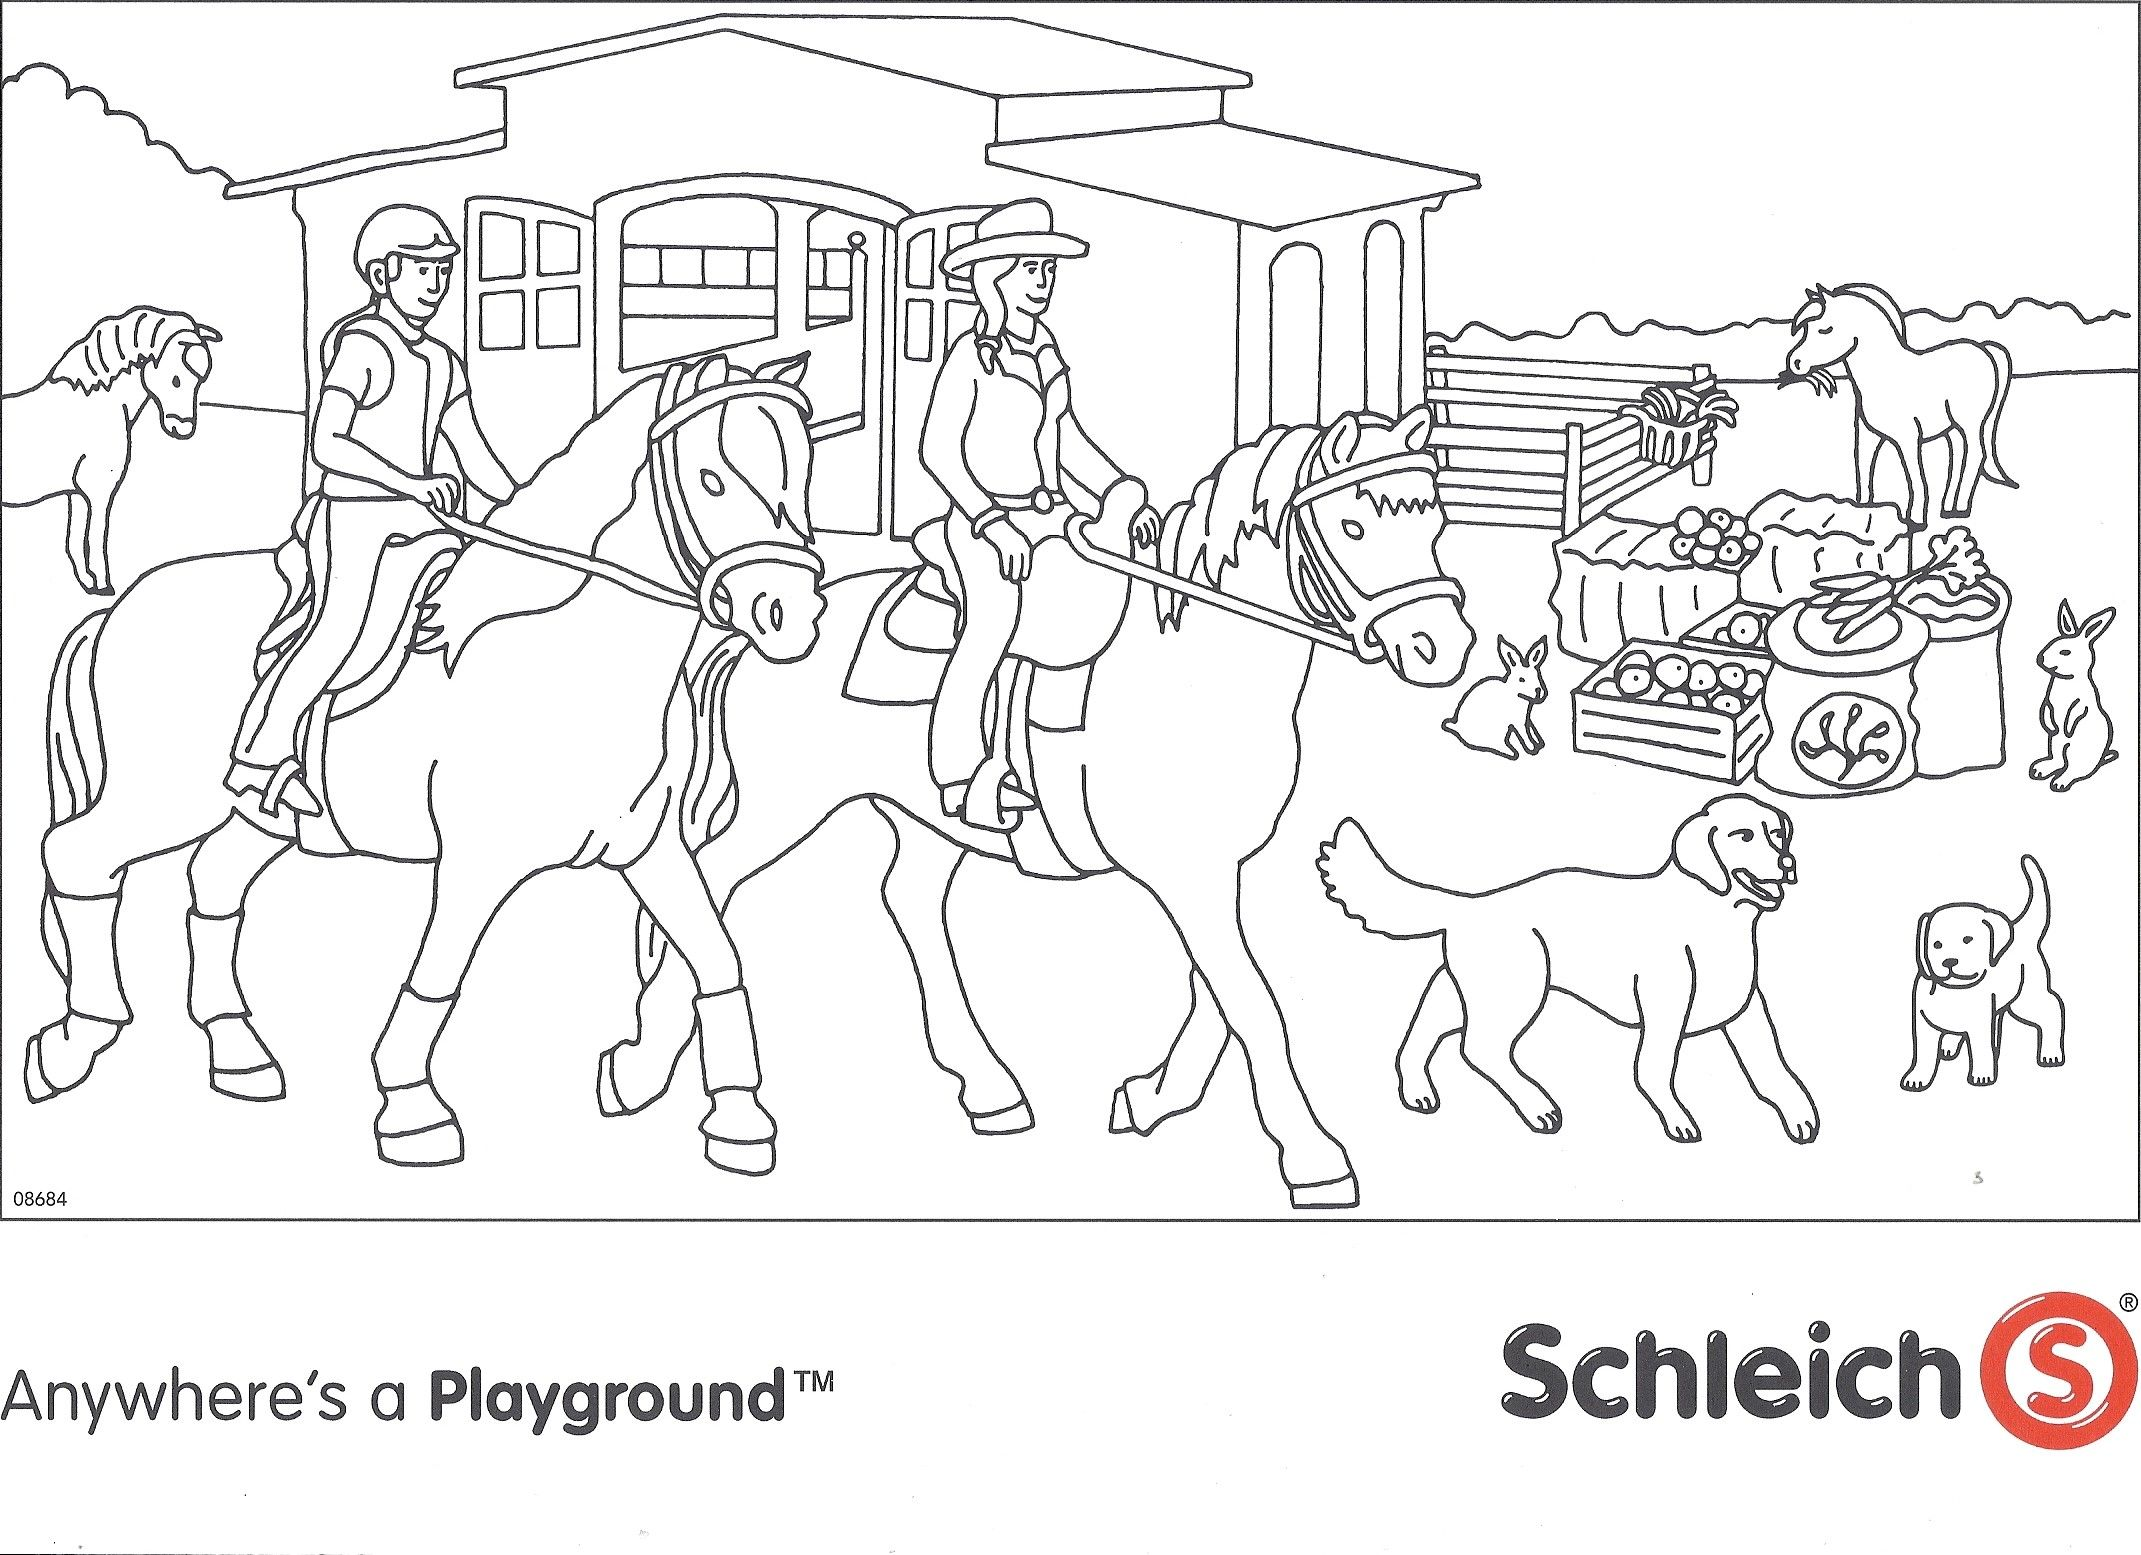 Schleich Colouring Contest MiniZoo